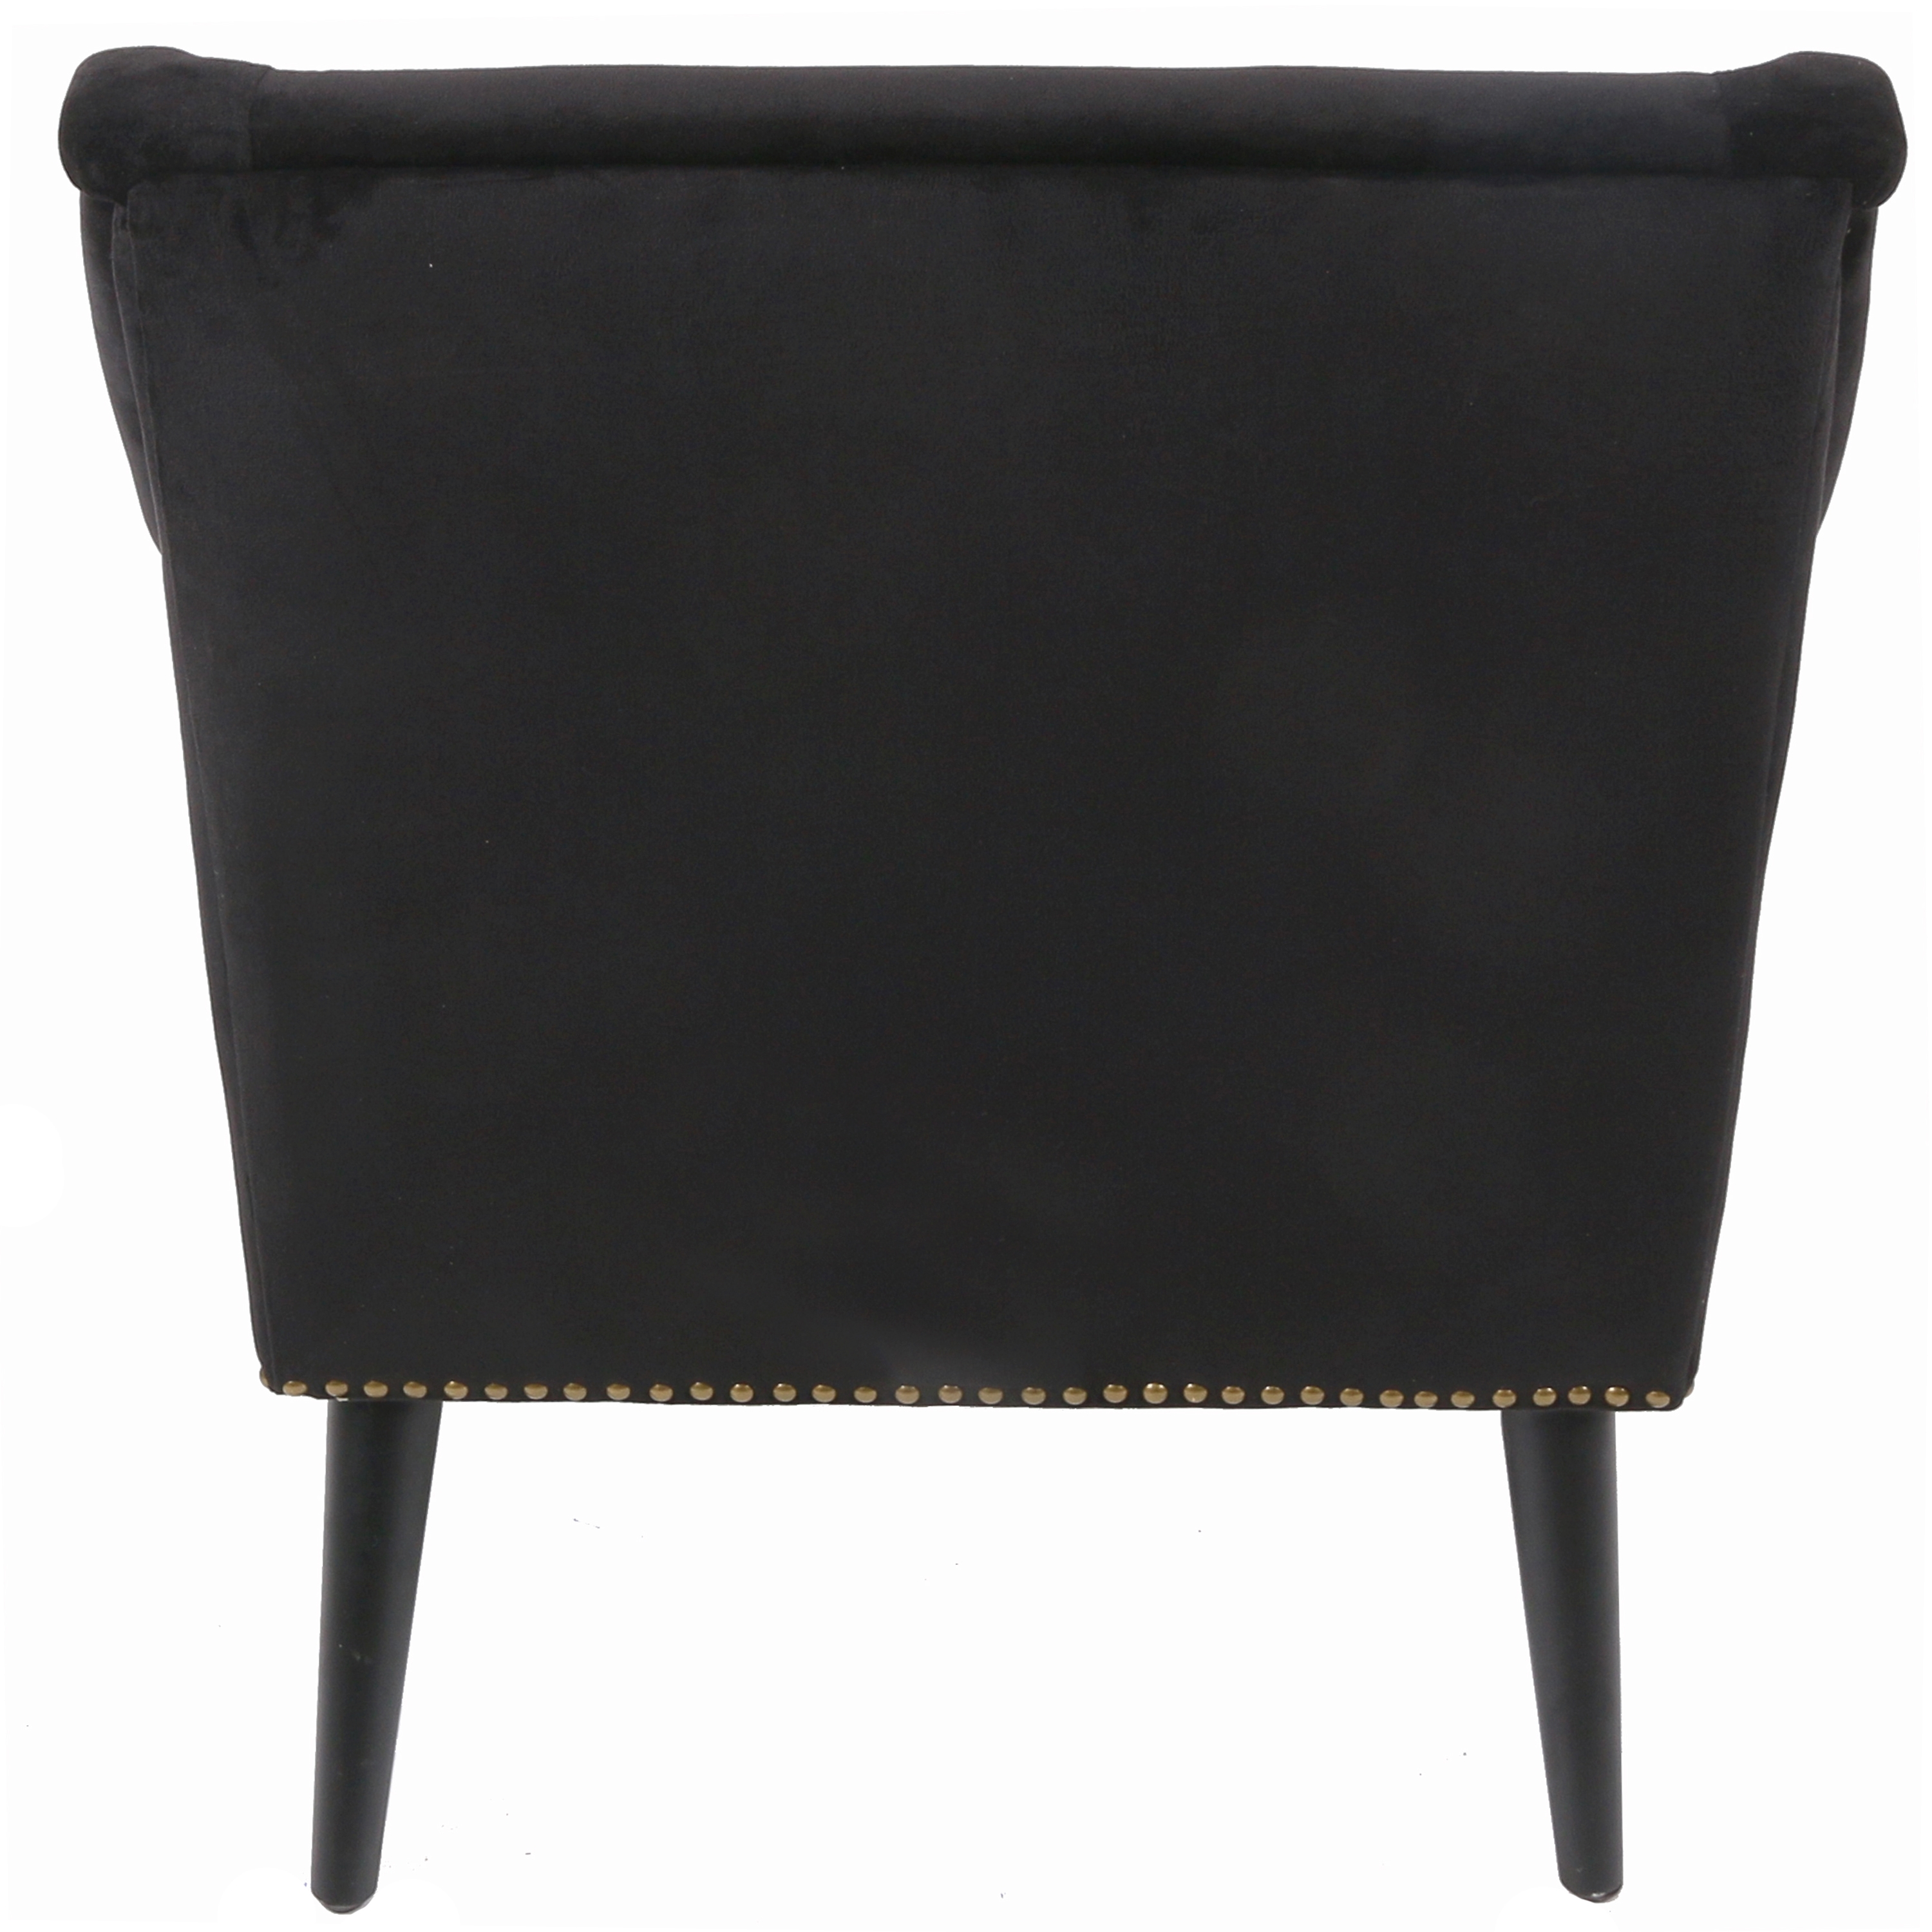 gold metal accent chair ikea covers perth 3500036 162 npd furniture wholesale lifestyle